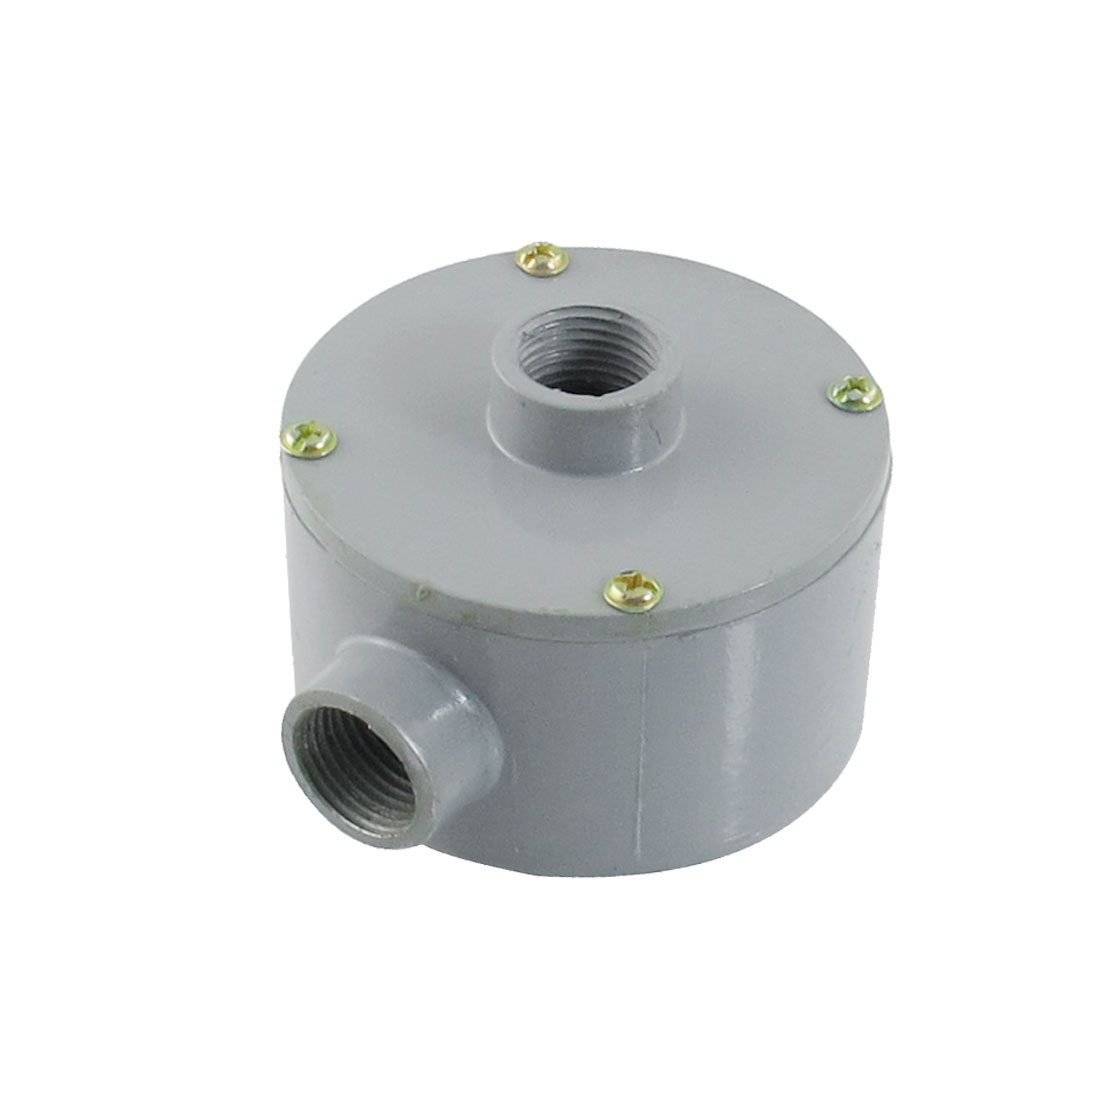 G1-2-Thread-Two-Holes-Conduit-Wiring-Round-Metal-Junction-Box